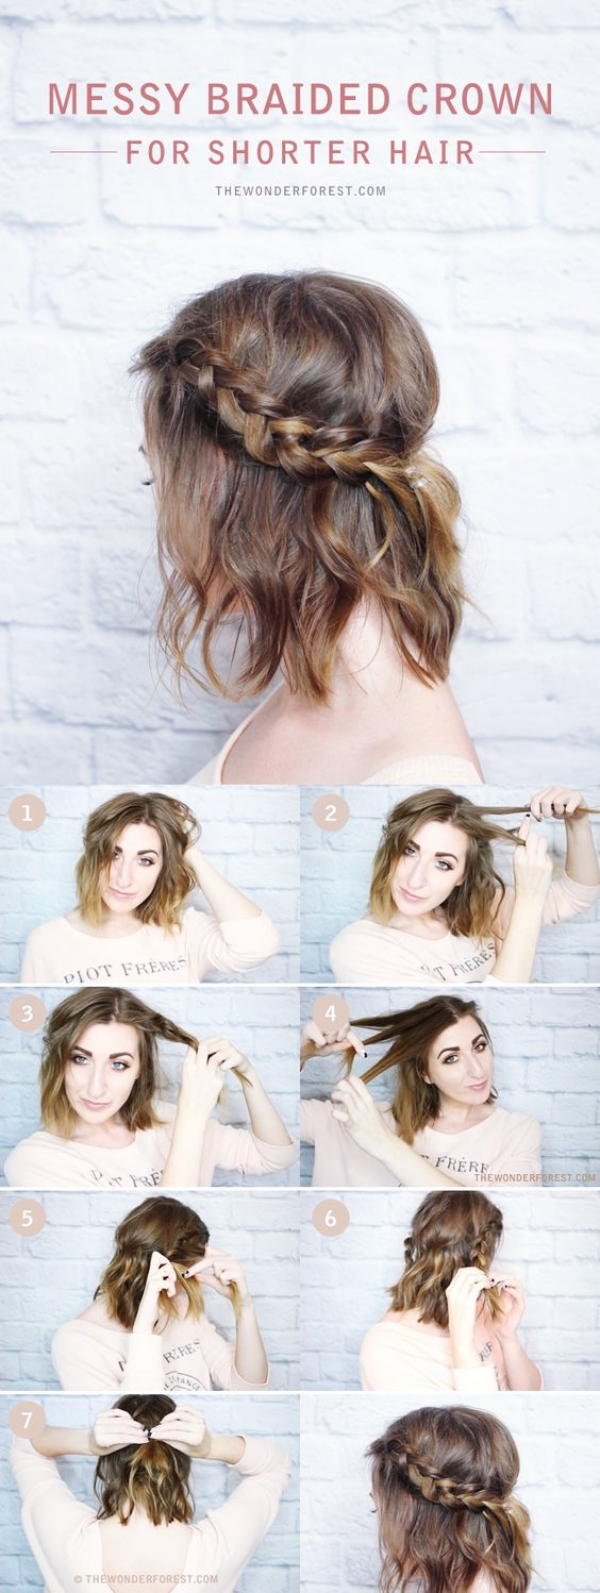 40 easy hairstyles (no haircuts) for women with short hair - how to